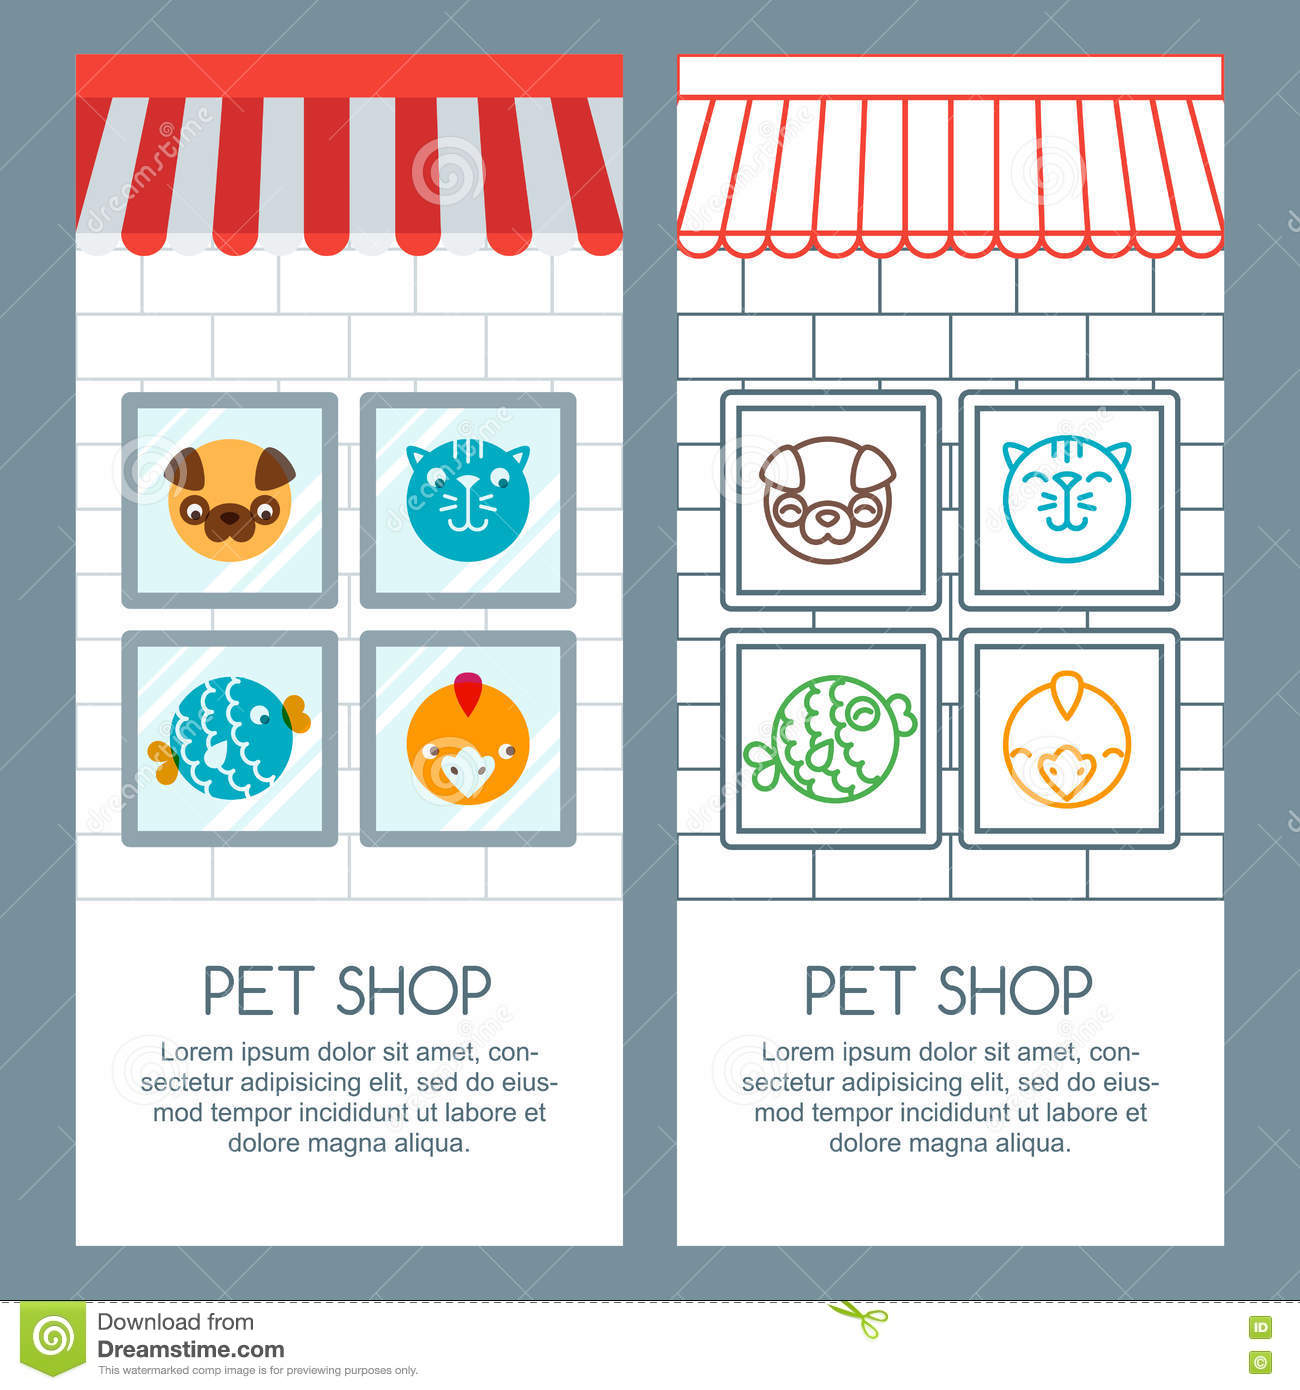 Pet Shop Pets Care Veterinary Concept Vector Banner Poster Or